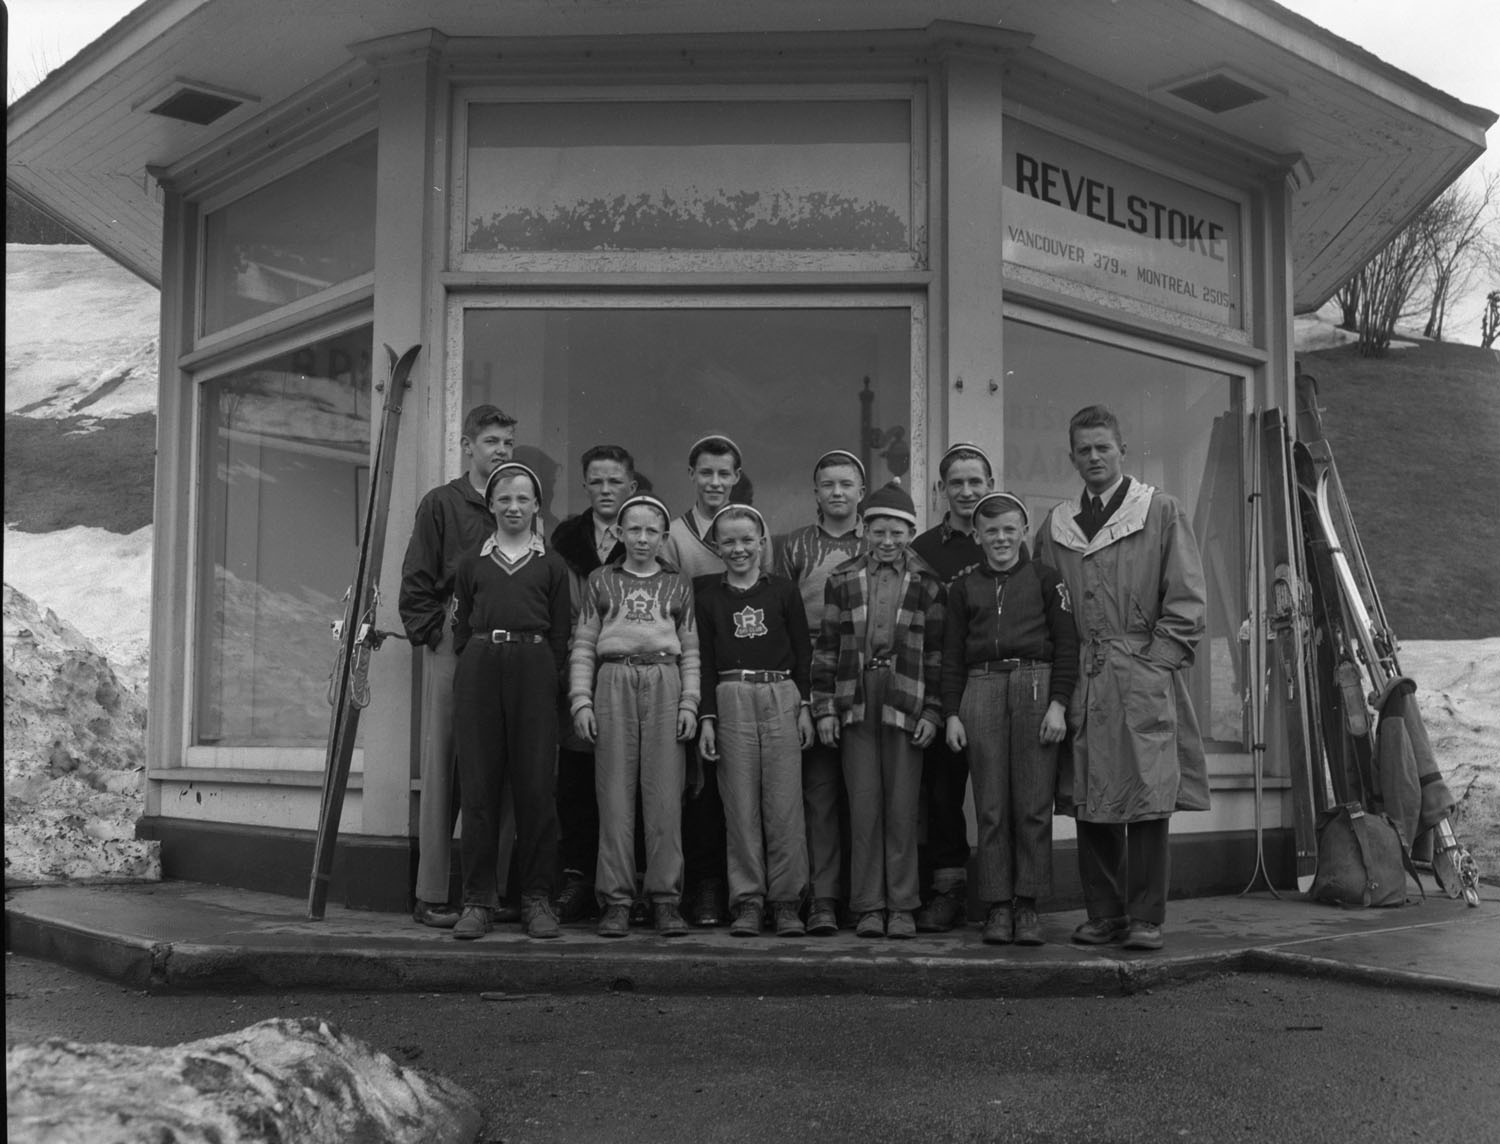 Young Revelstoke Skiers & Kiosk at CPR Station [DN-486]